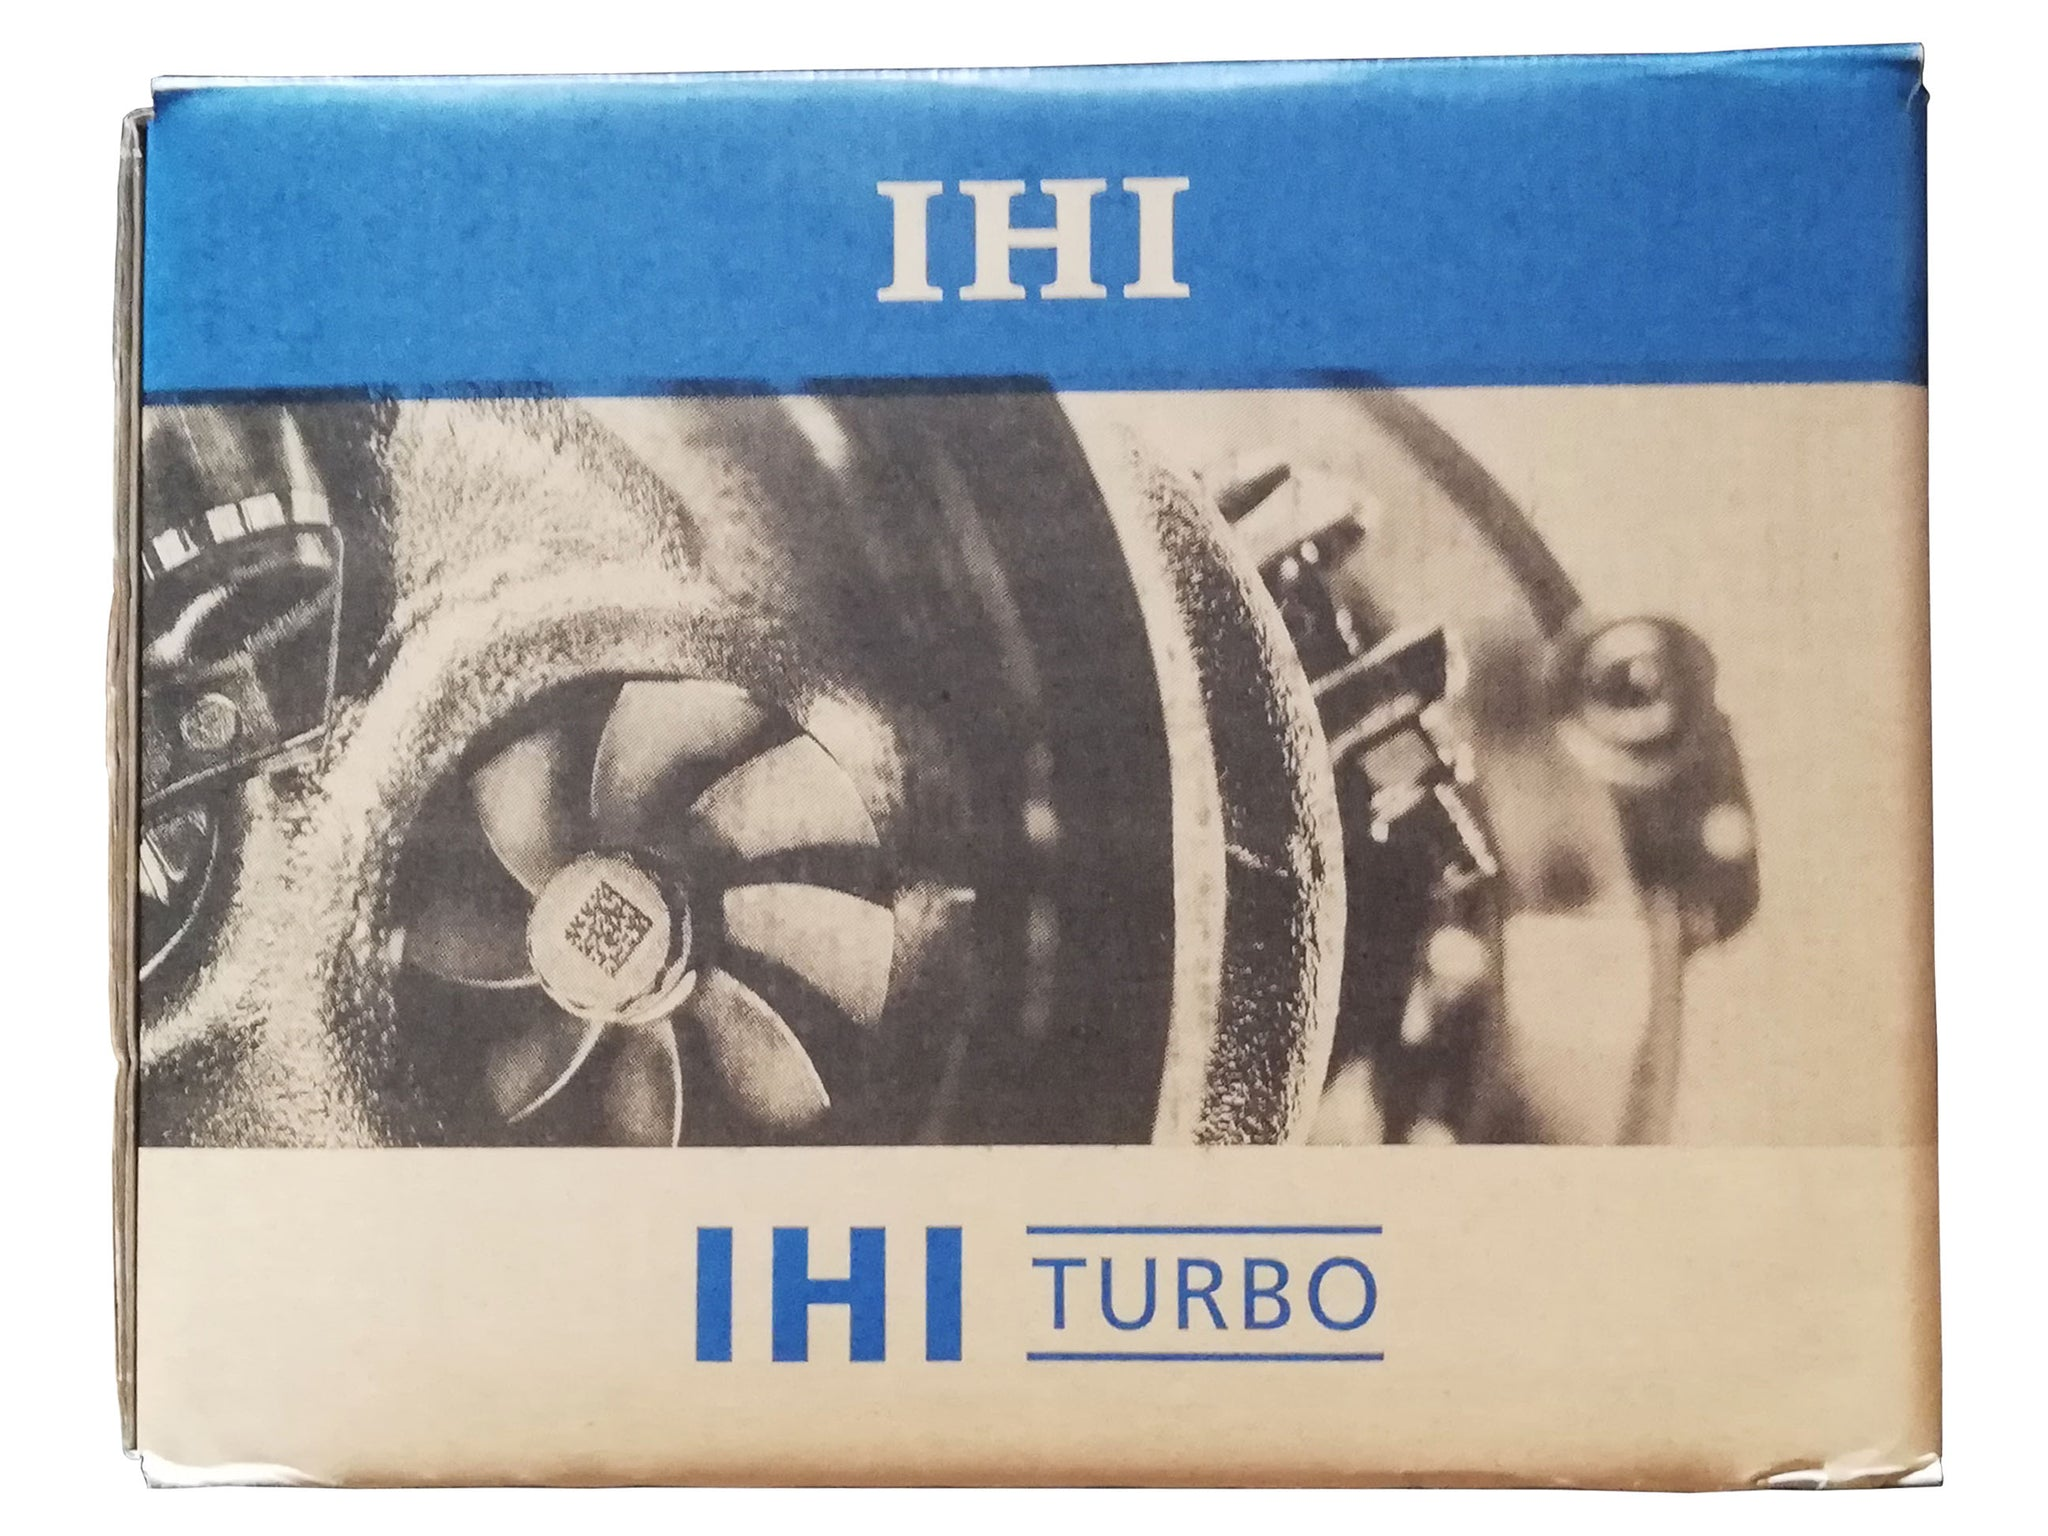 NEW IHI RHC61A Turbo Hino FB14 Rainbow RB145 W04C-T W04C-TI 6T-545 VF240023 VX18